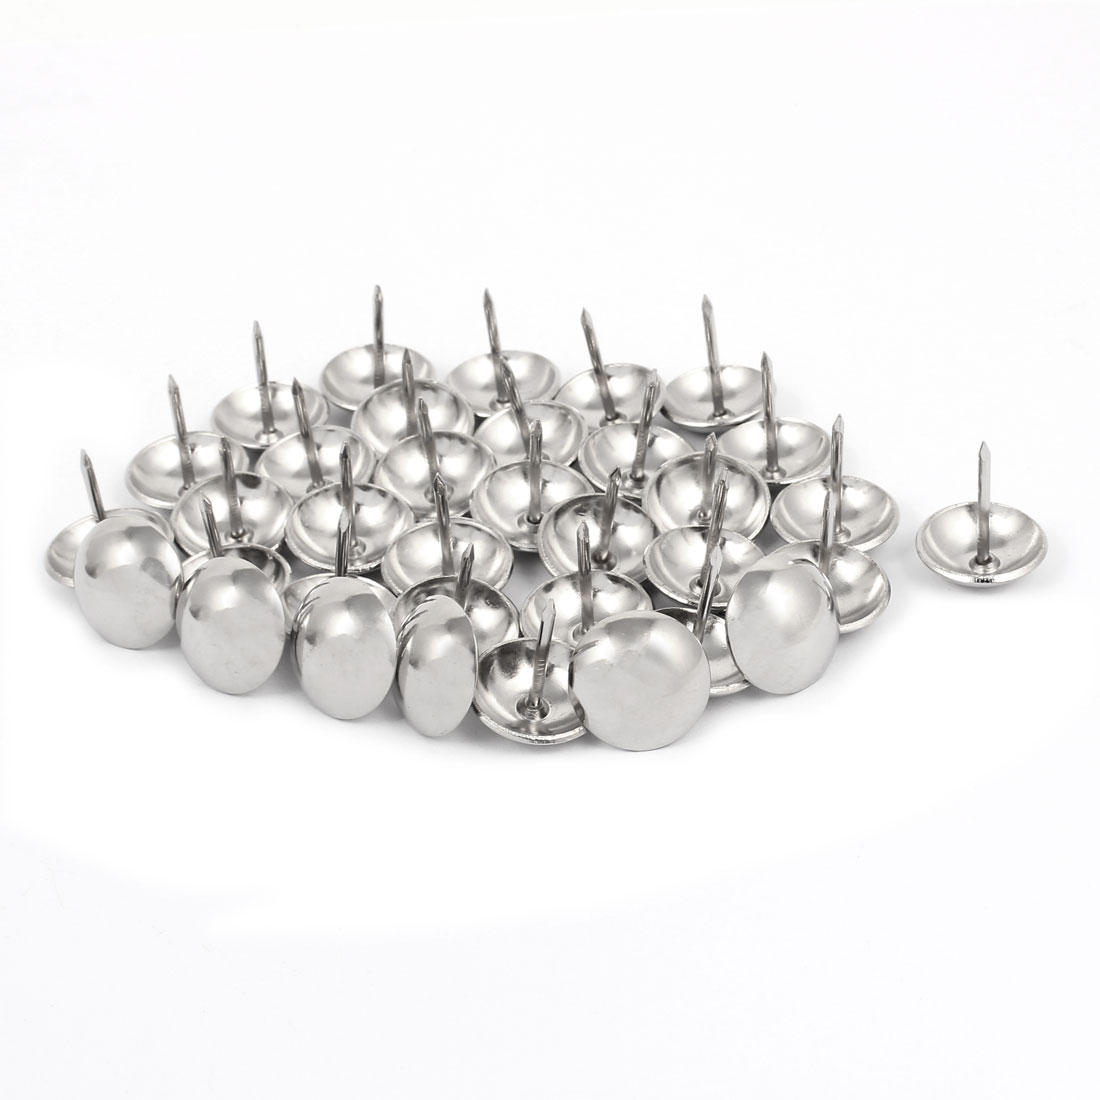 19mm Dia Stainless Steel Upholstery Tack Nail Decorative Thumbtack Pushpin 35PCS